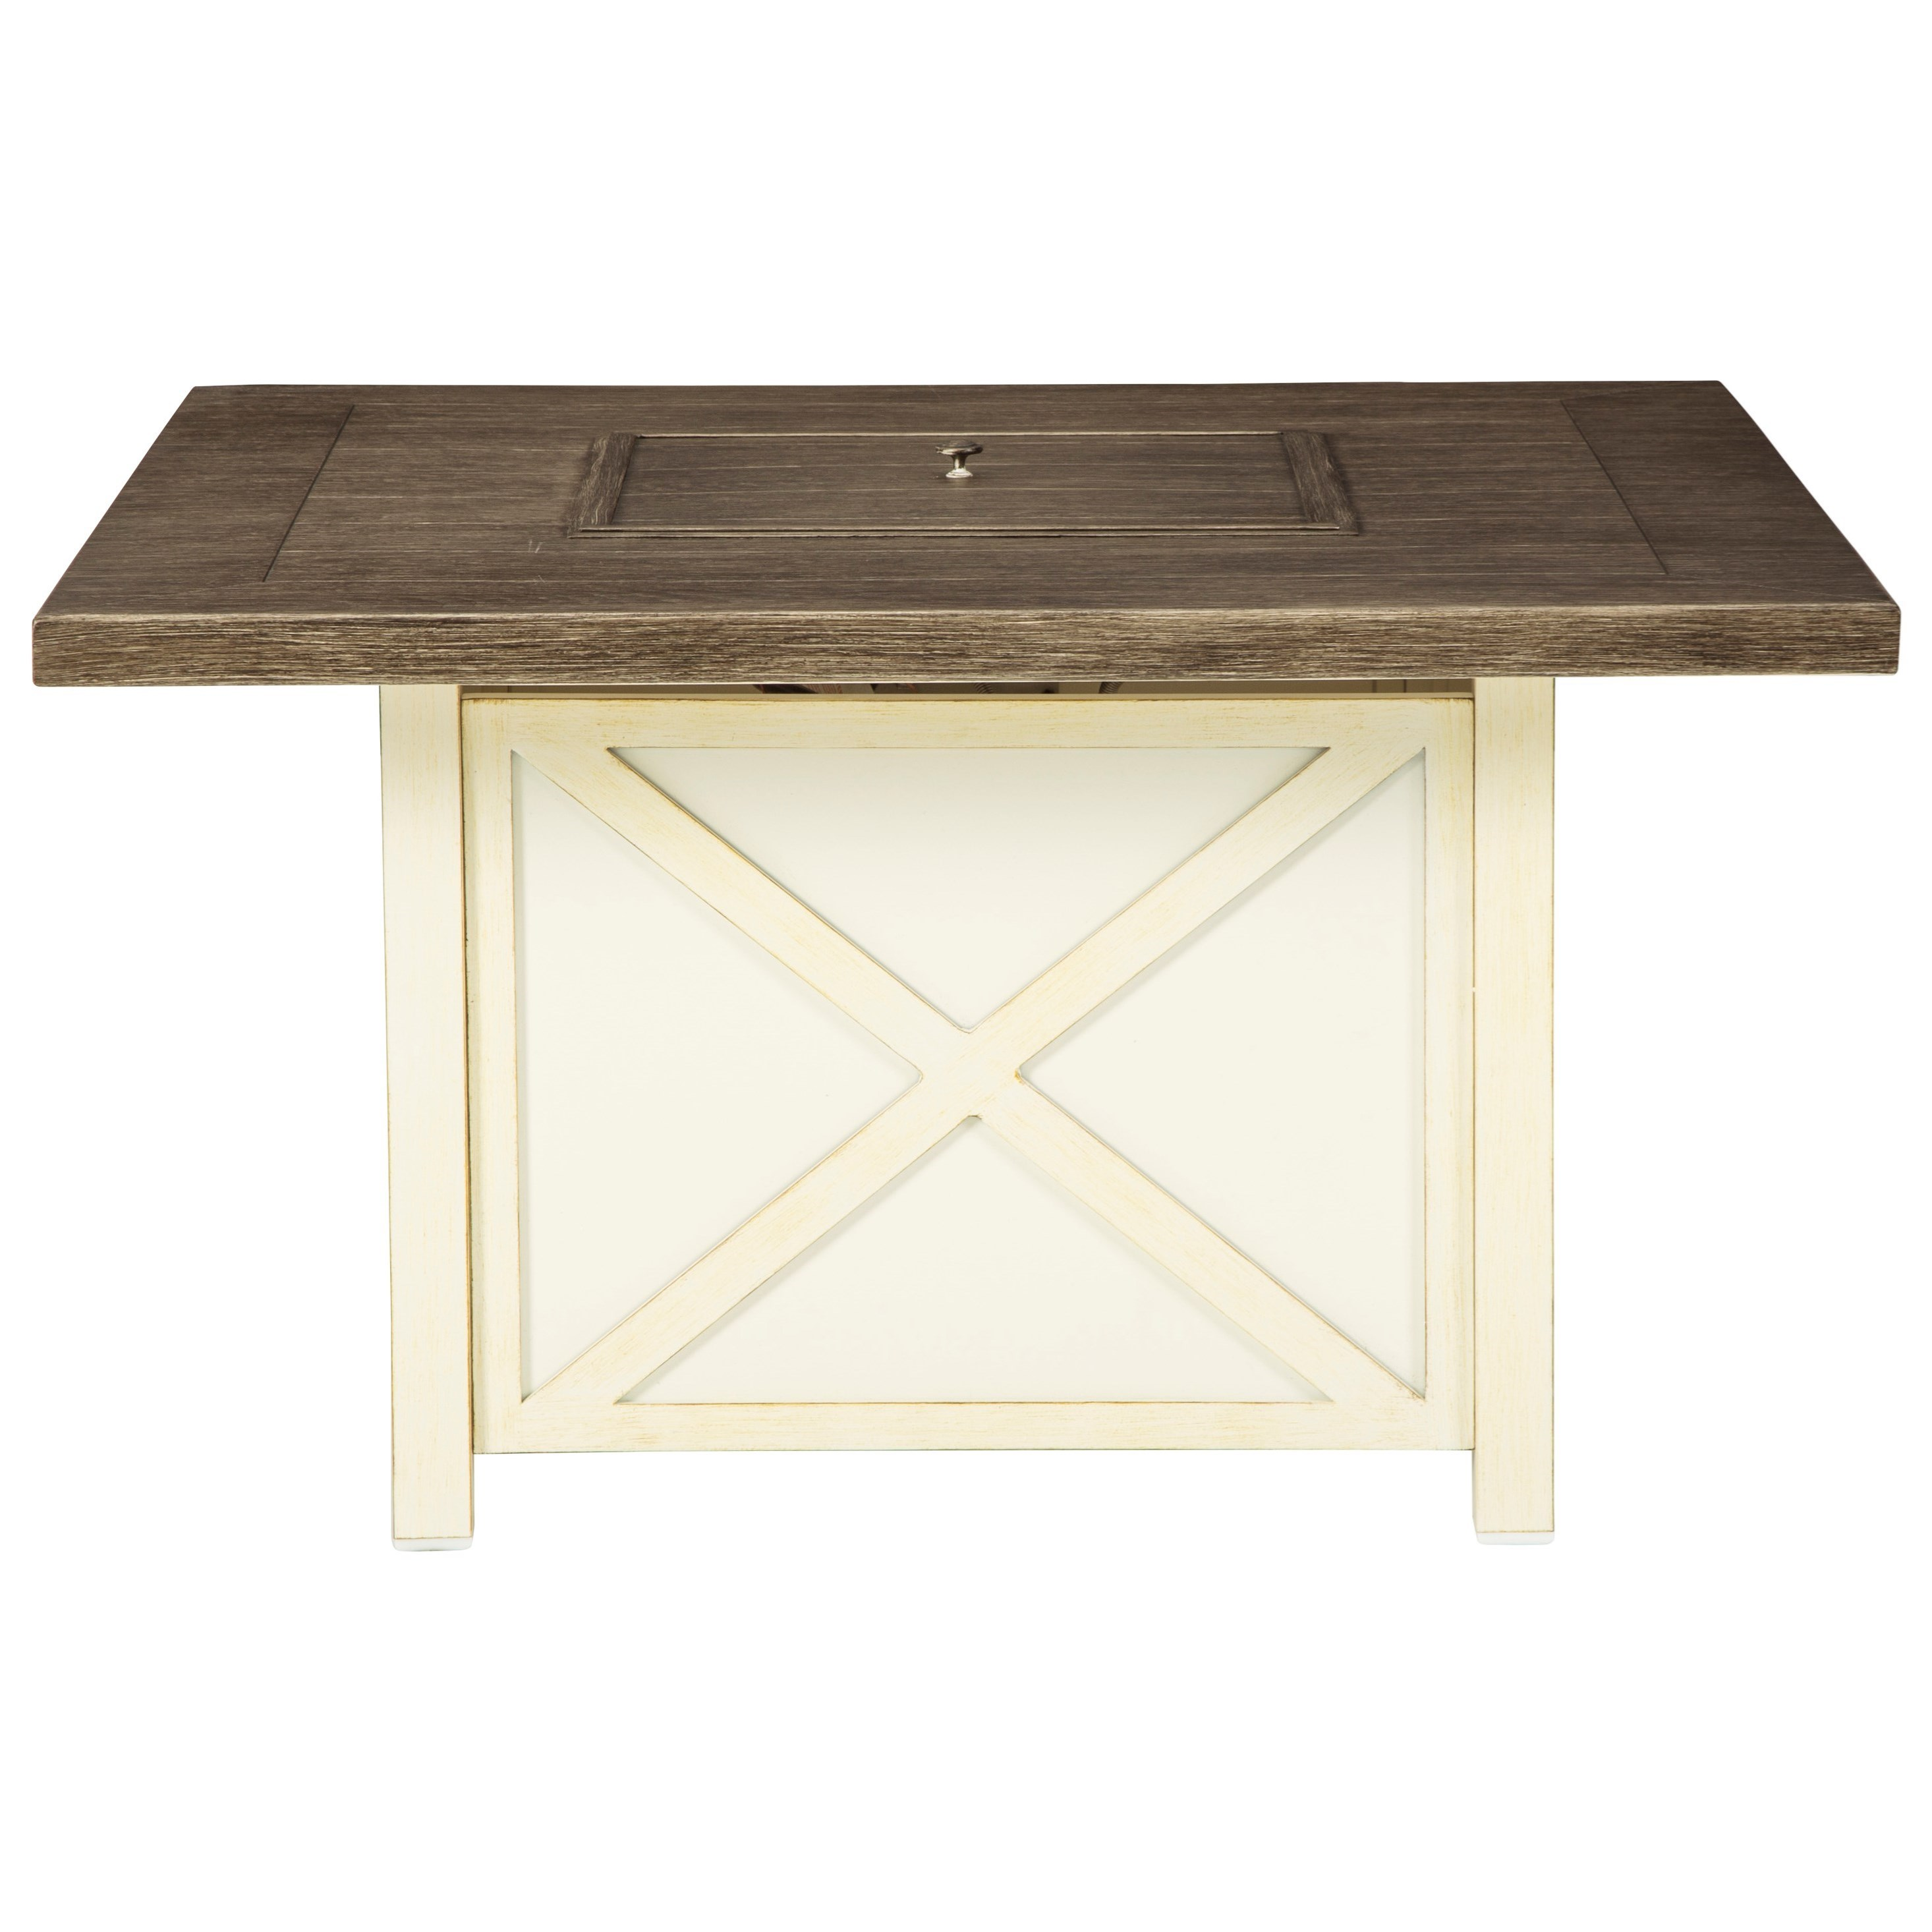 Preston Bay Square Fire Pit Table by Signature at Walker's Furniture